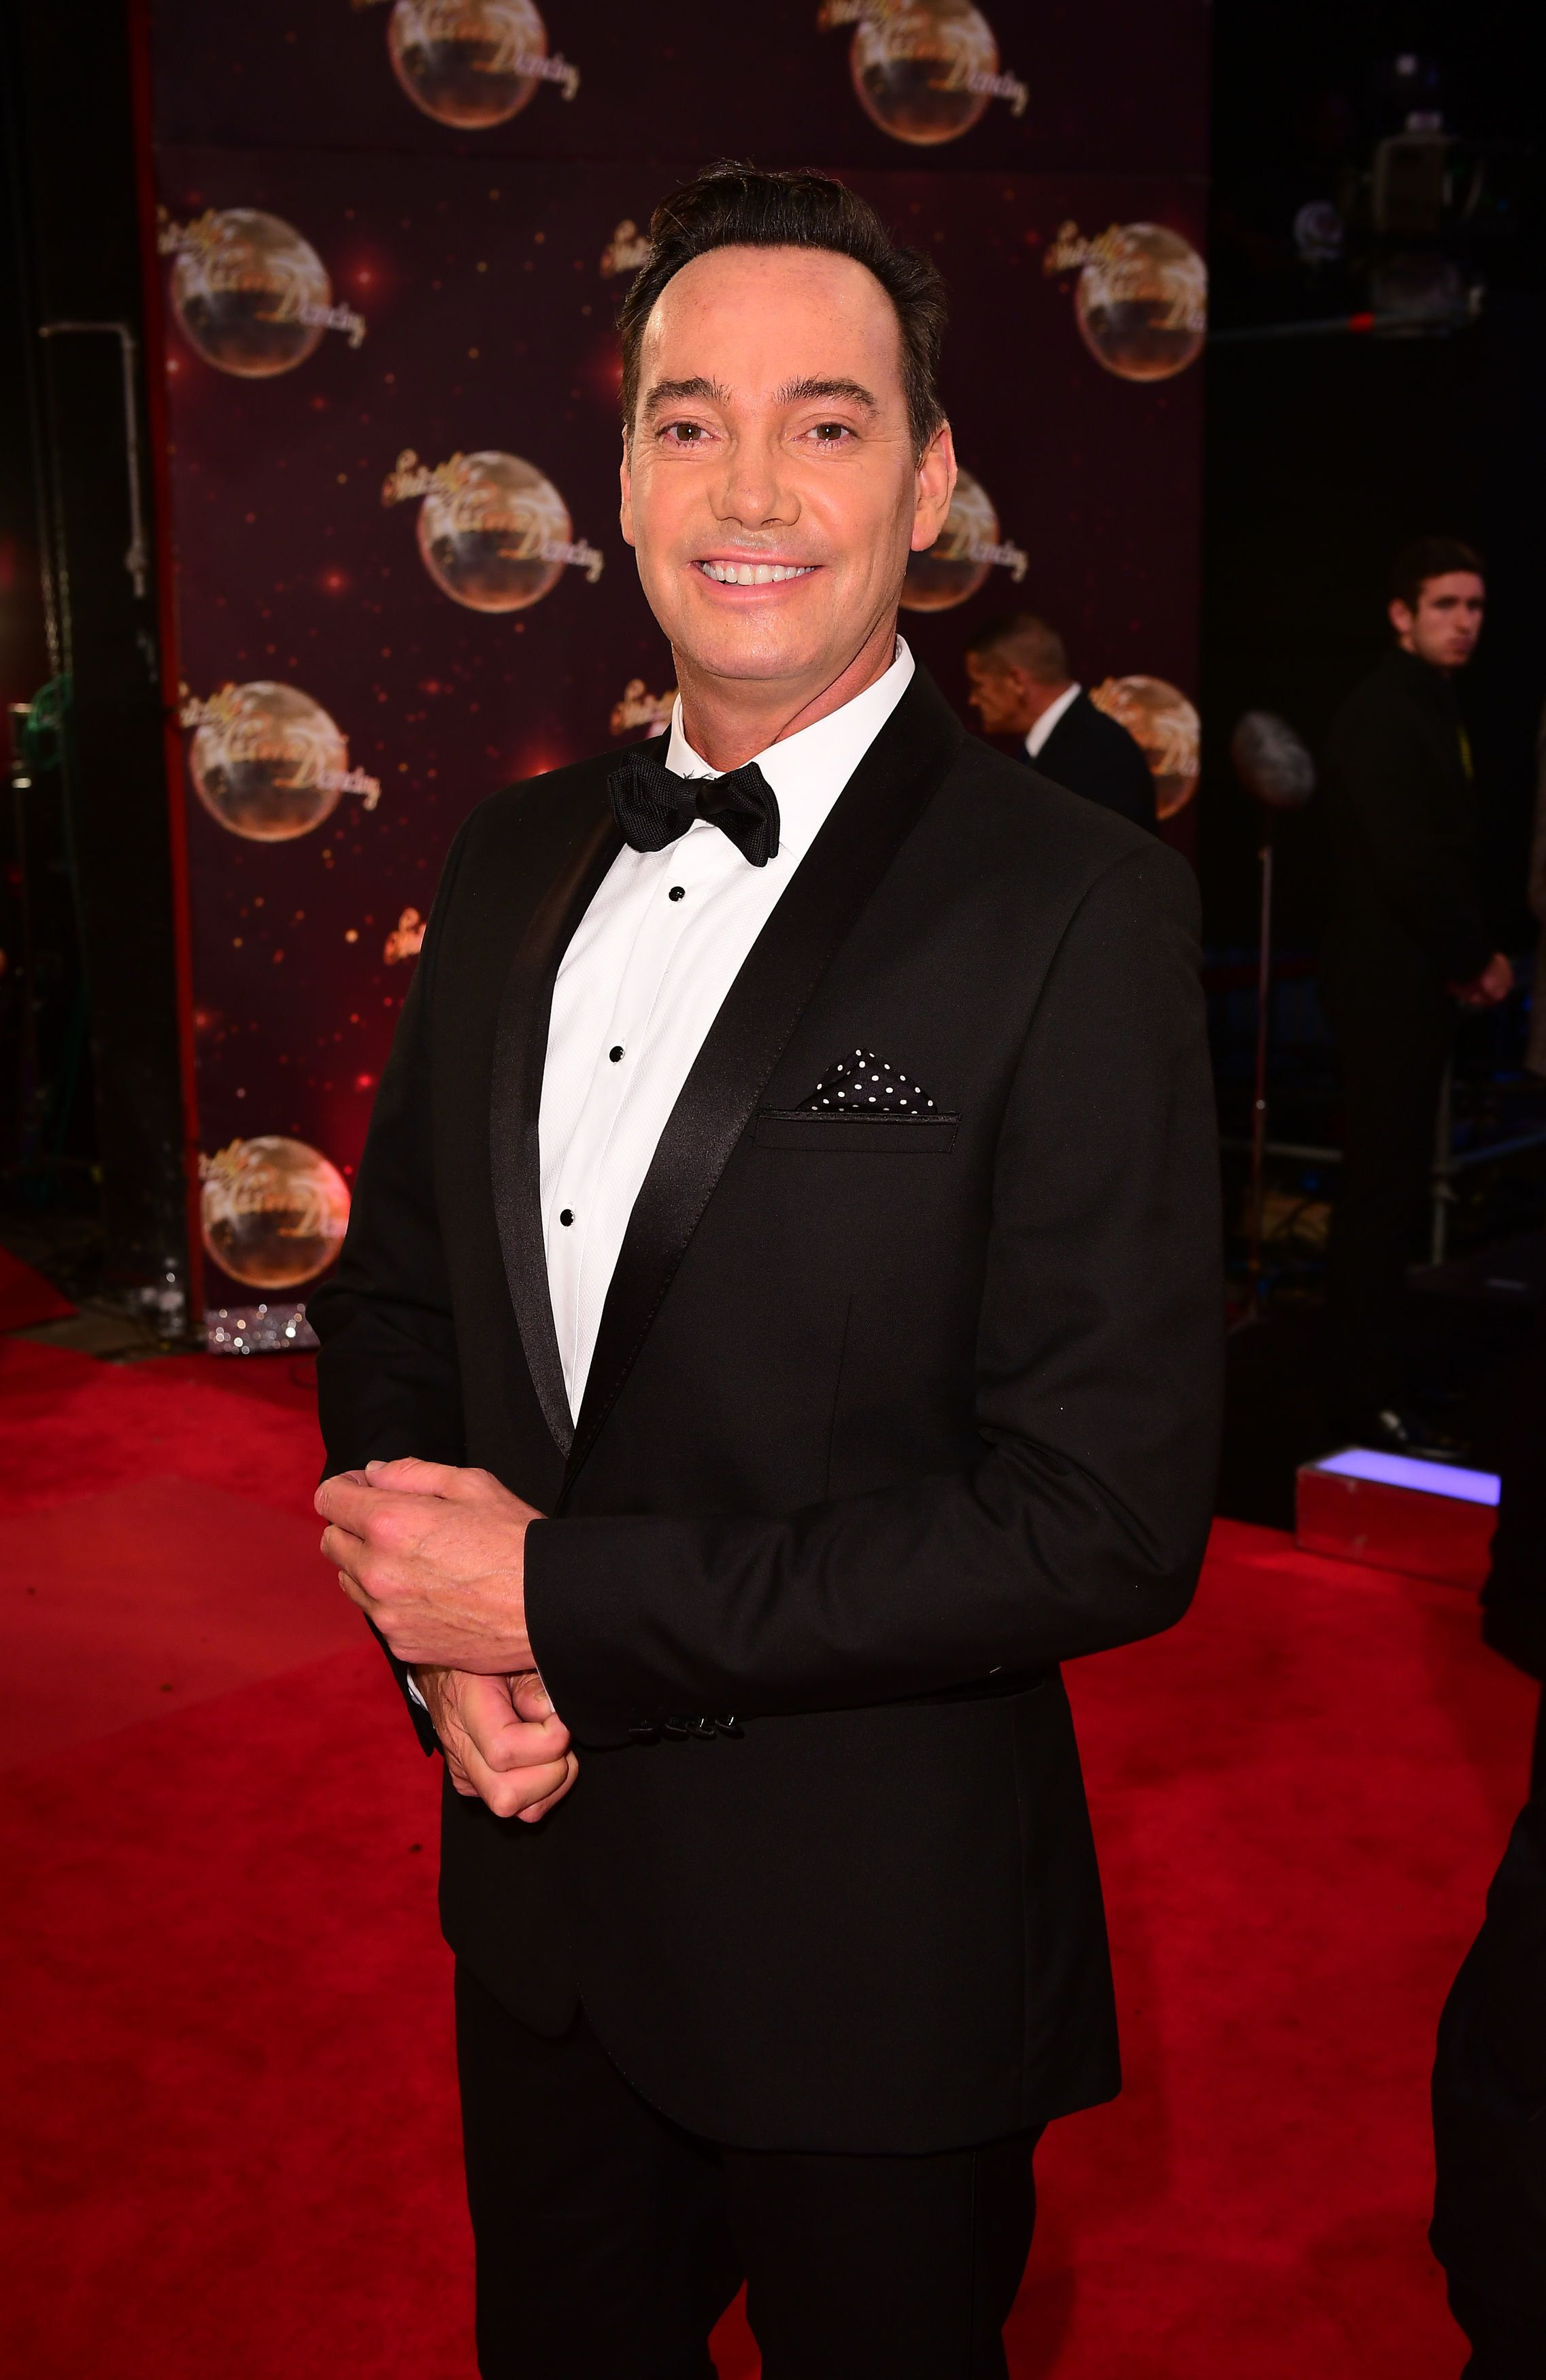 Craig Revel Horwood Admits To 'Lying Through His Teeth' About Excitement For 'Strictly'